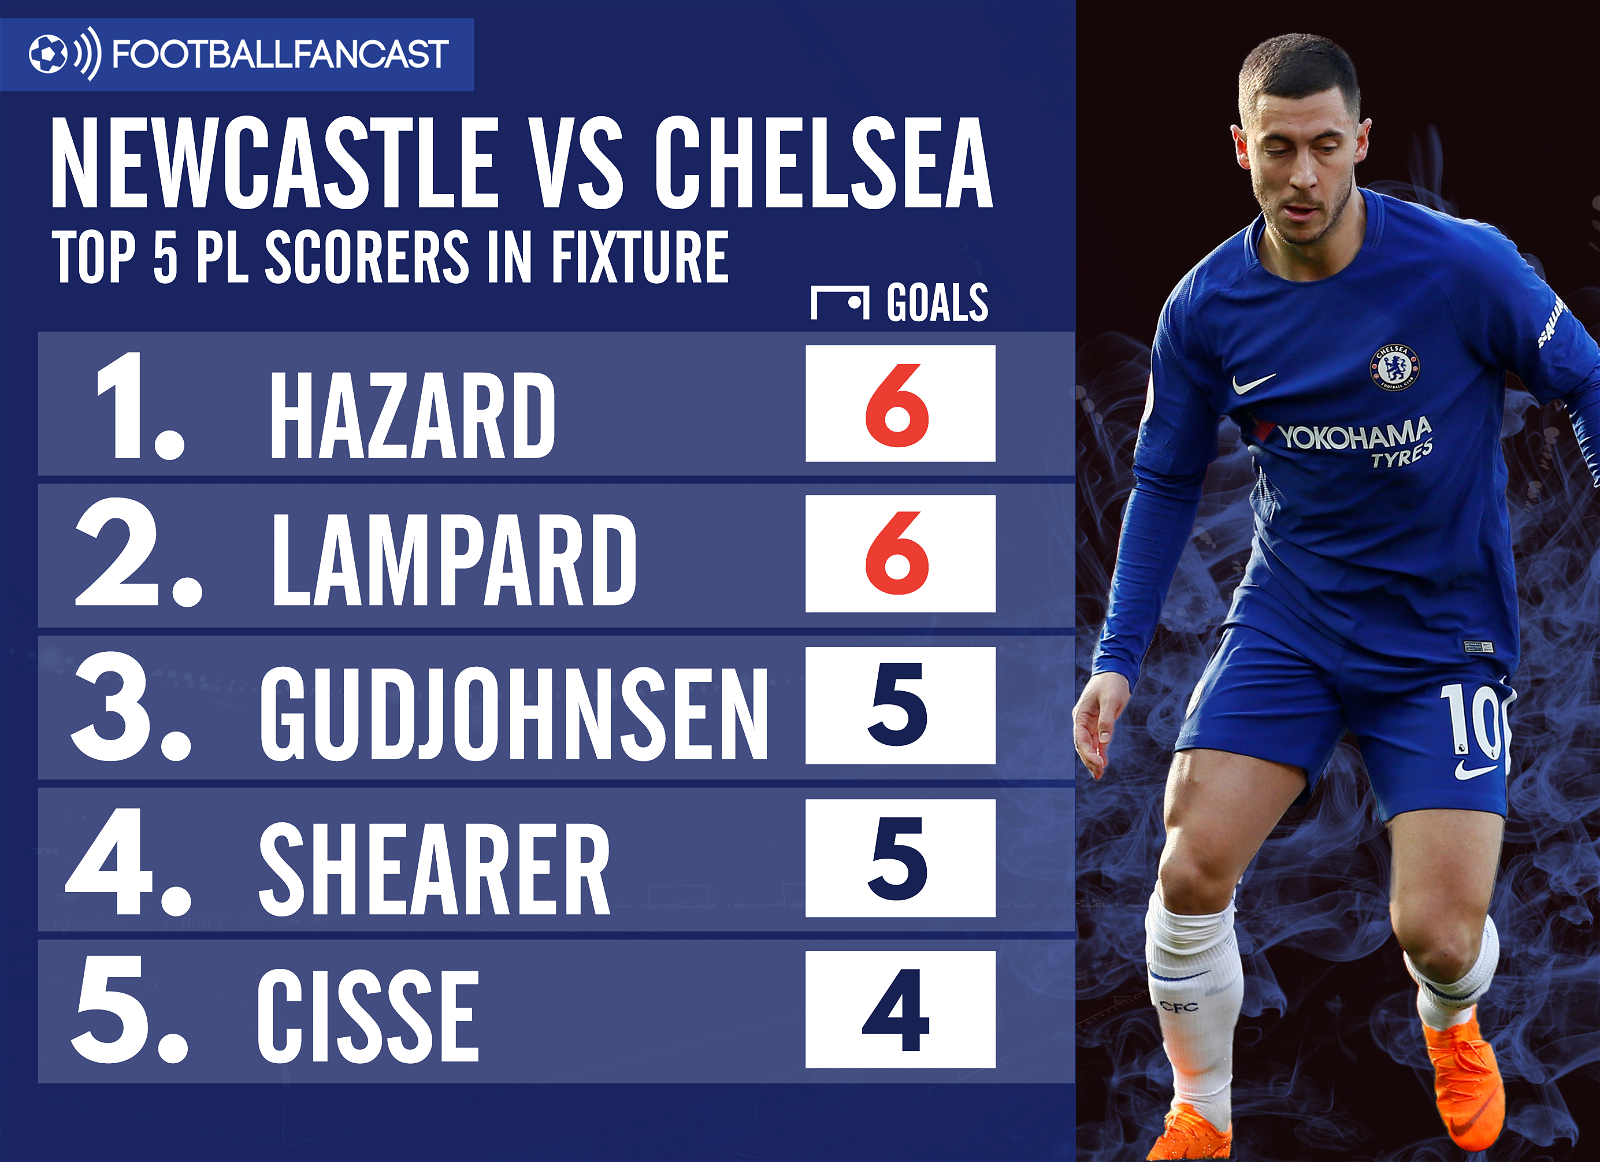 Newcastle vs Chelsea - Top Scorers